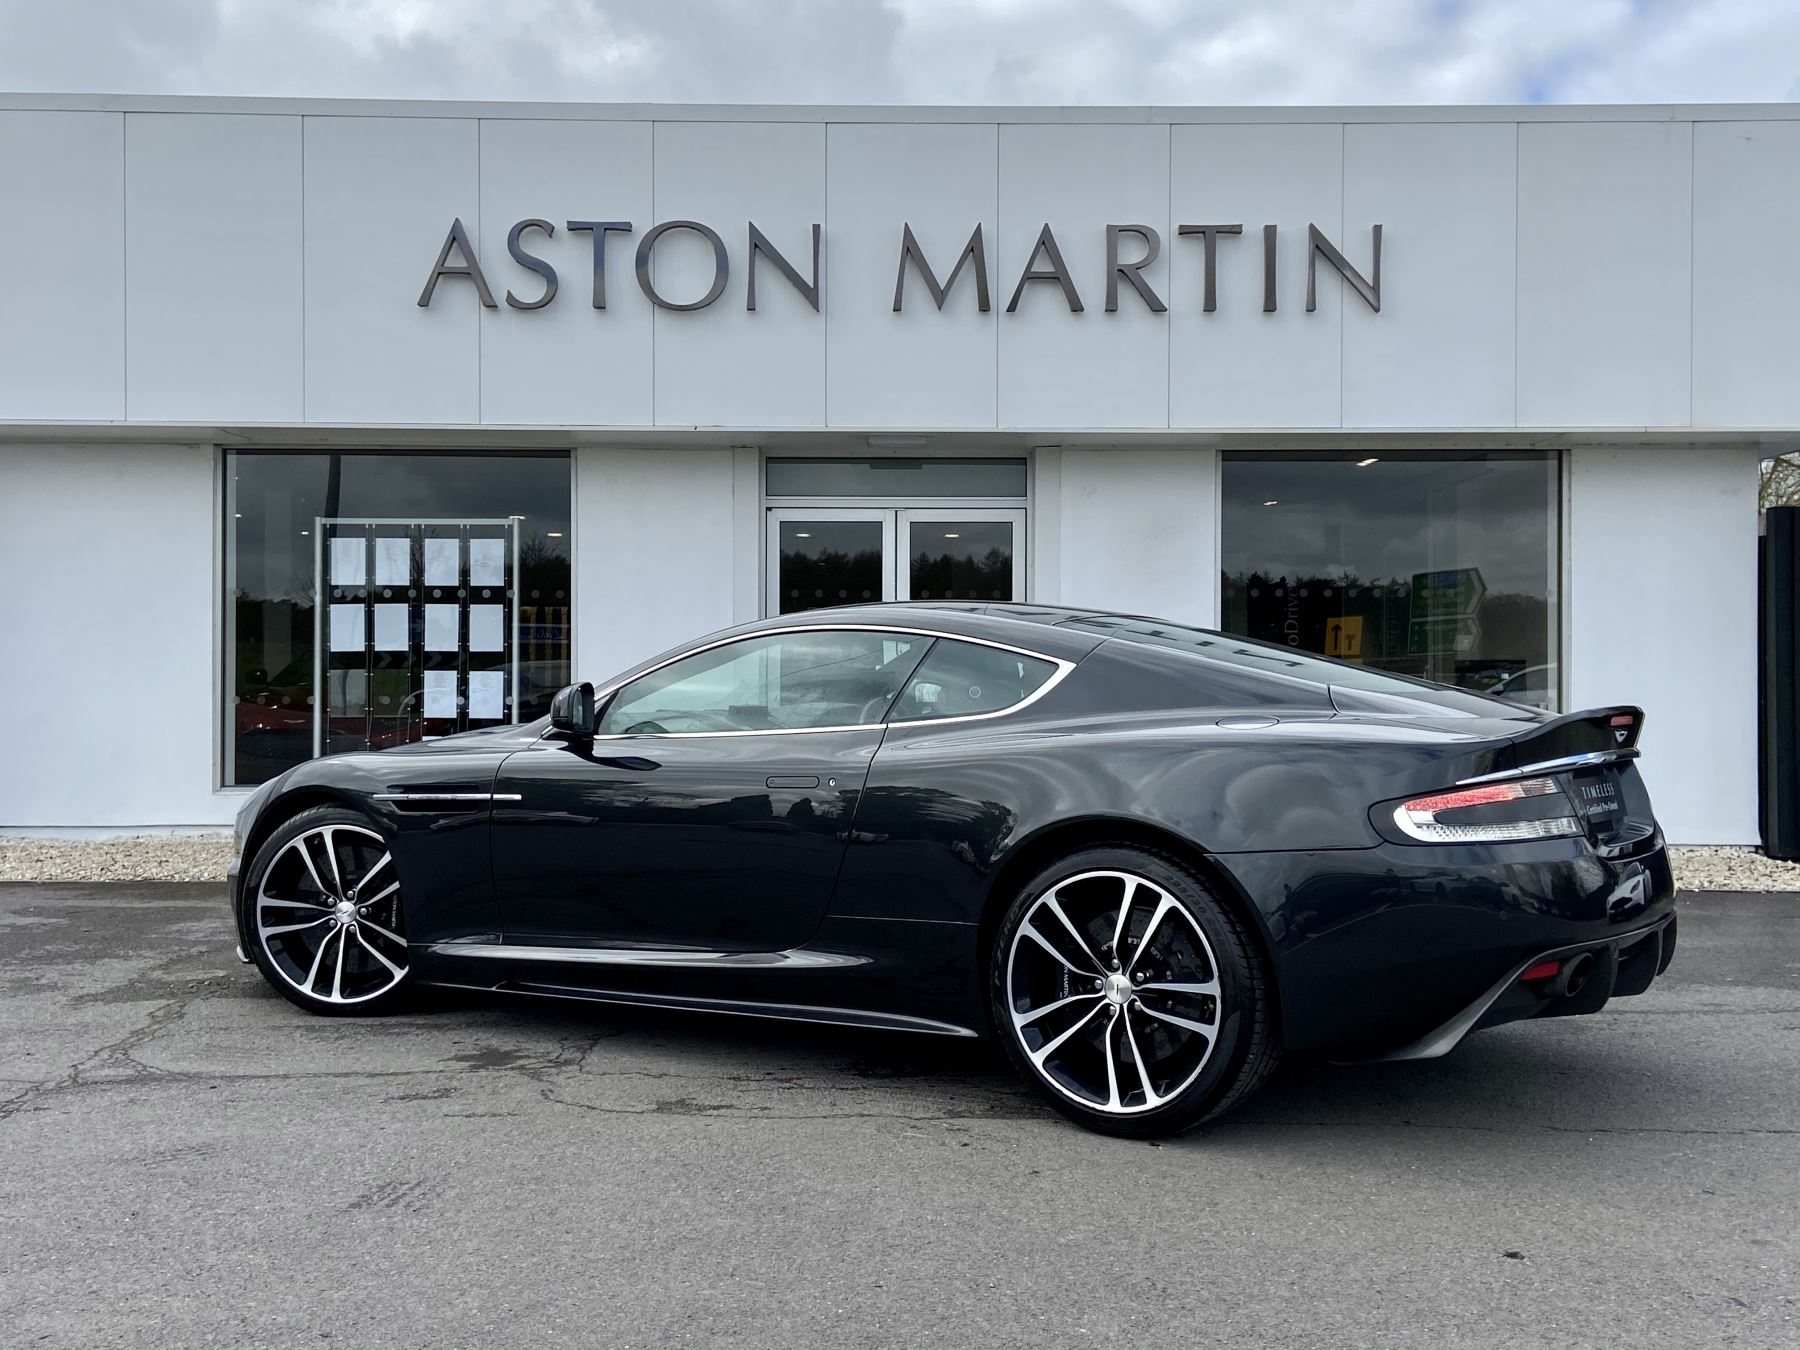 Aston Martin DBS Carbon Edition V12 2dr Touchtronic image 7